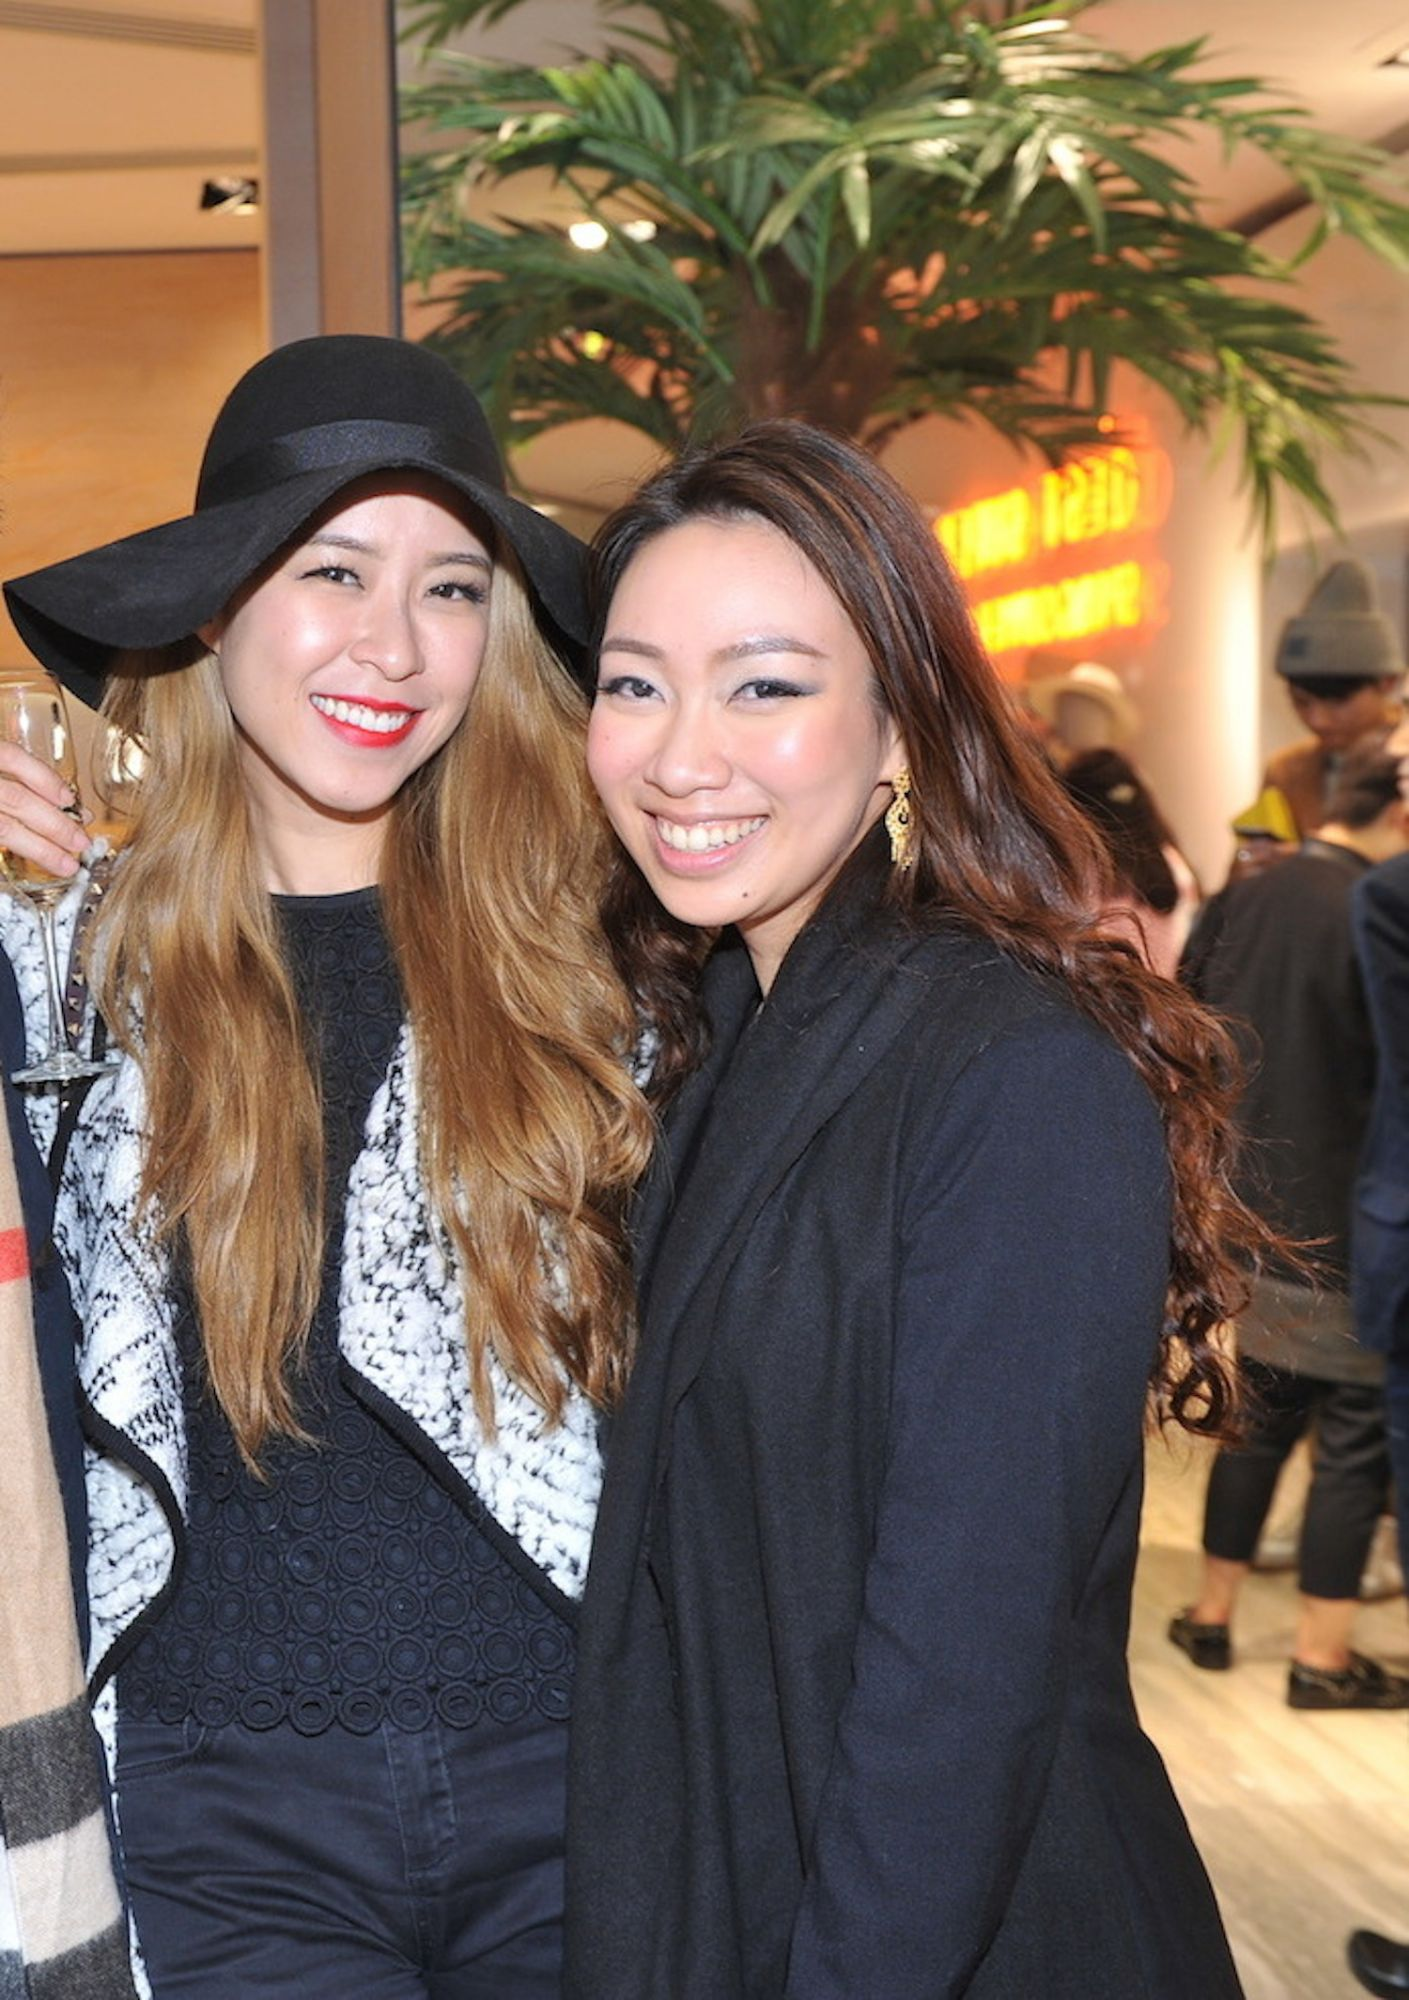 Jolie Chan and Veronica Lam